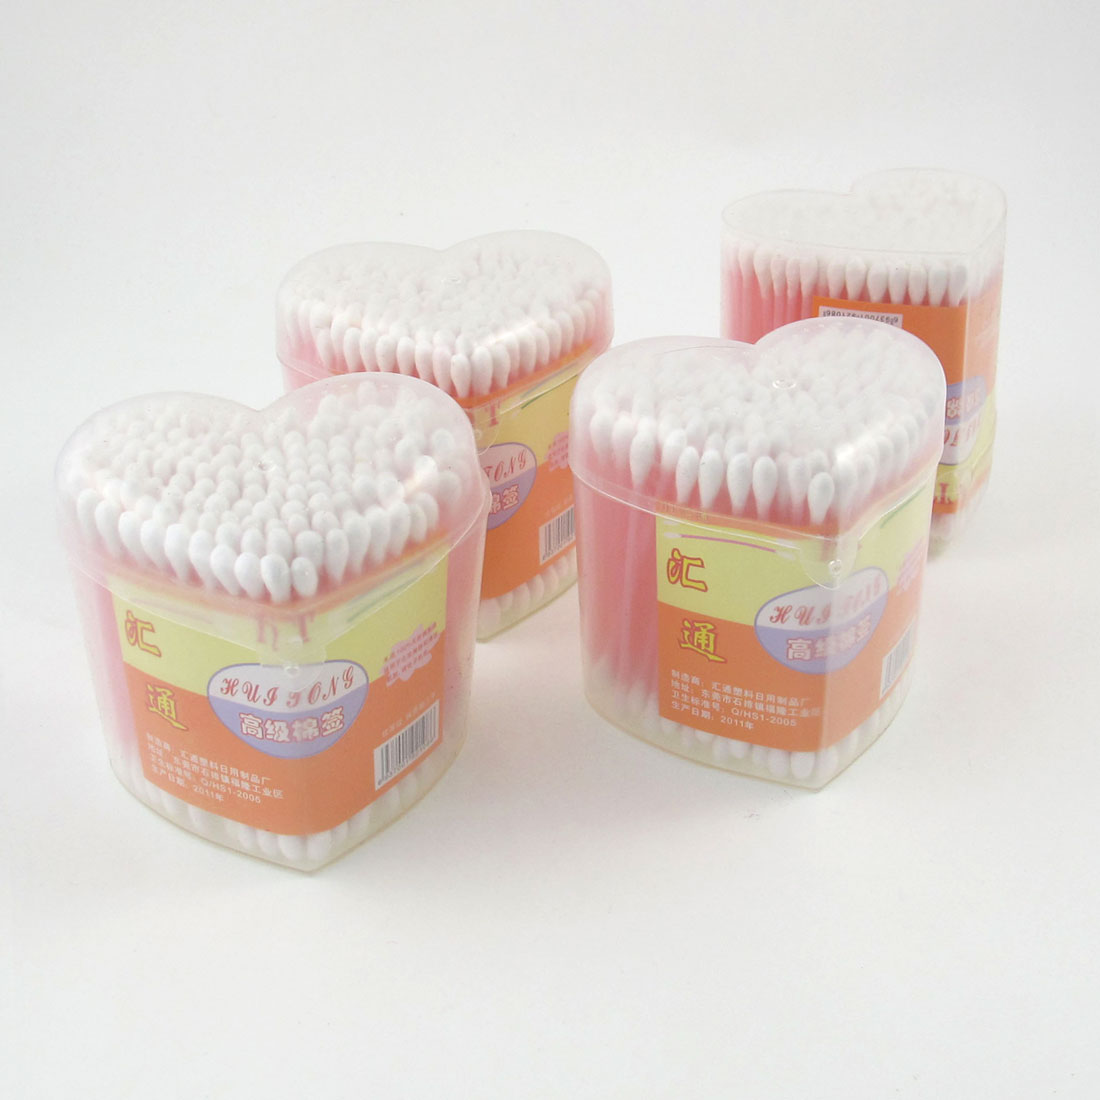 4 Packs Heart Shaped Box Double Heads Cosmetic Cotton Buds Swabs Light Pink